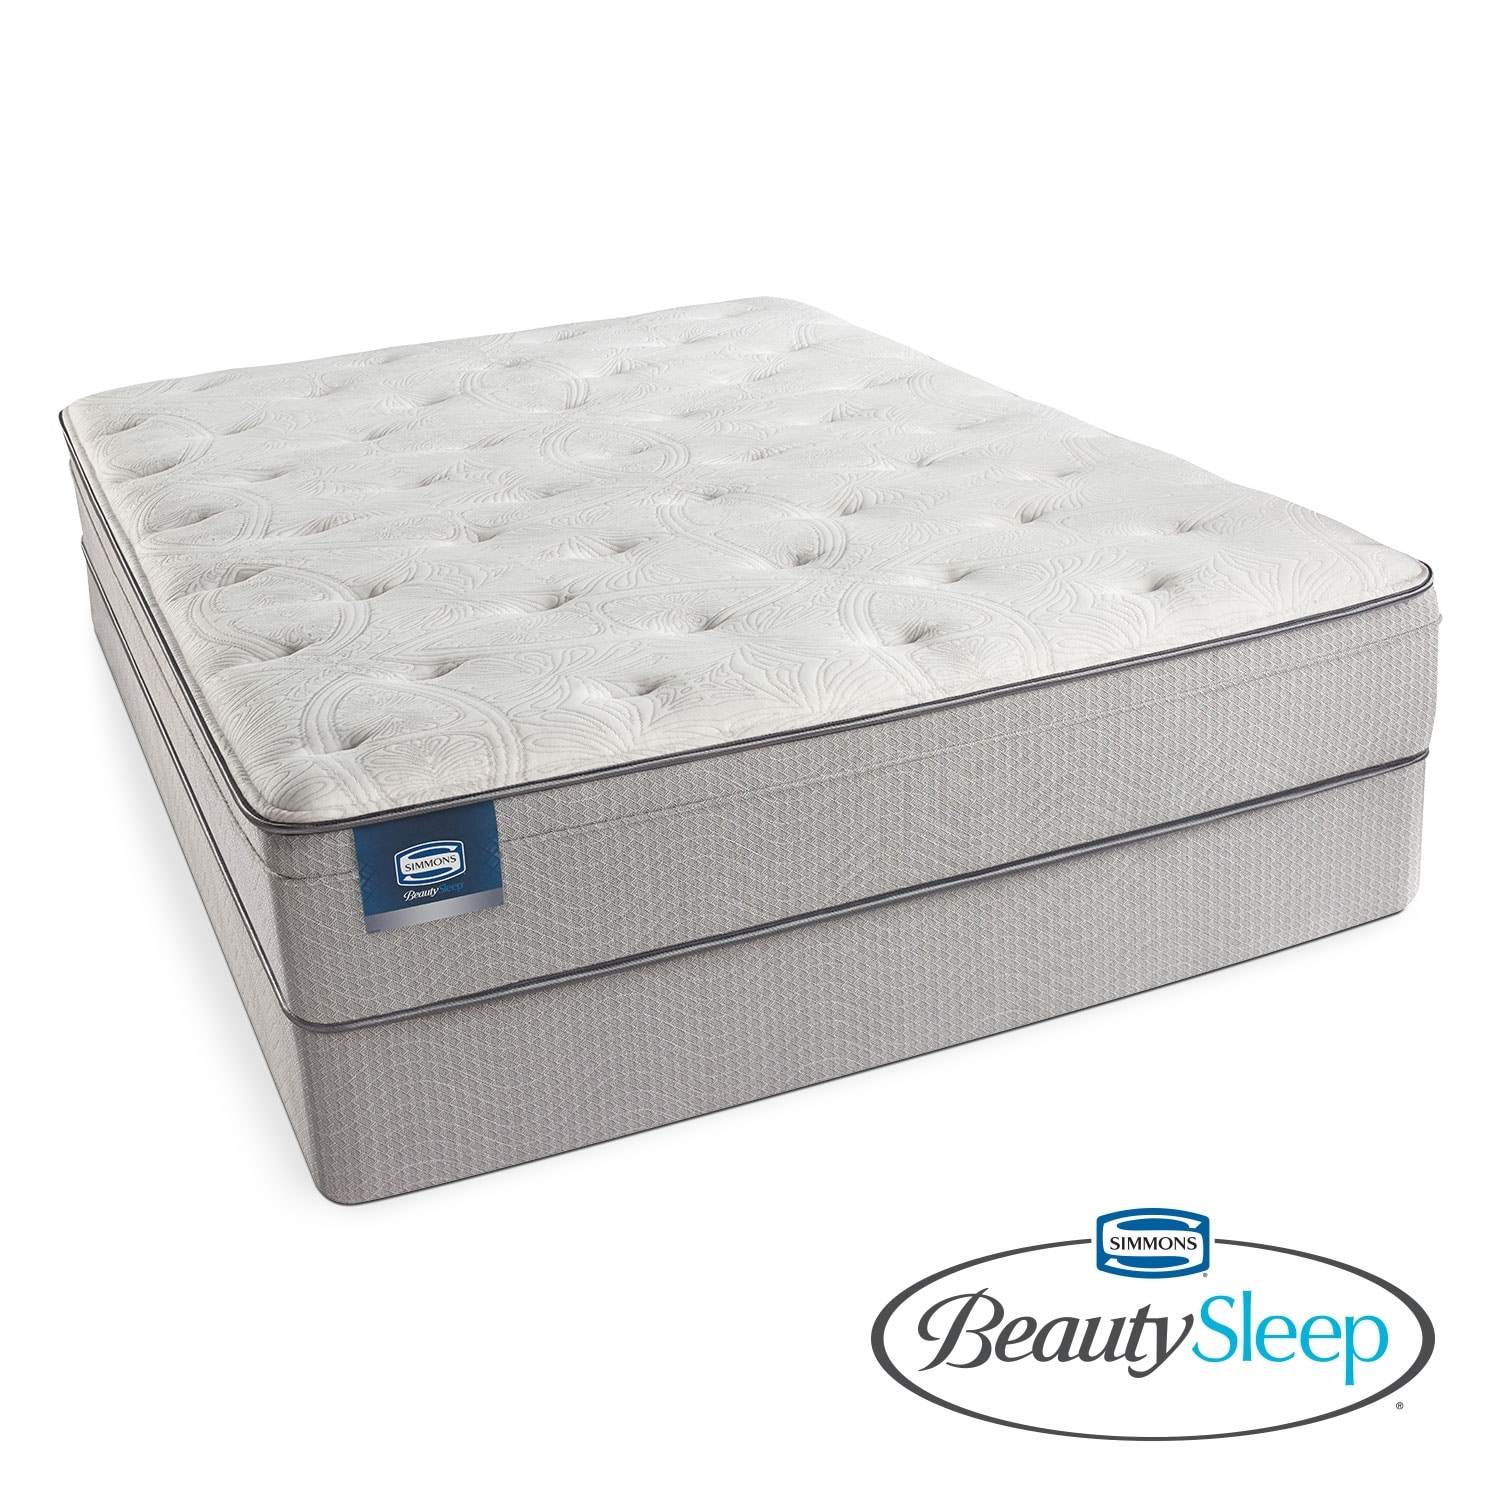 Mattresses and Bedding - Canal St. Plush Queen Mattress/Foundation Set